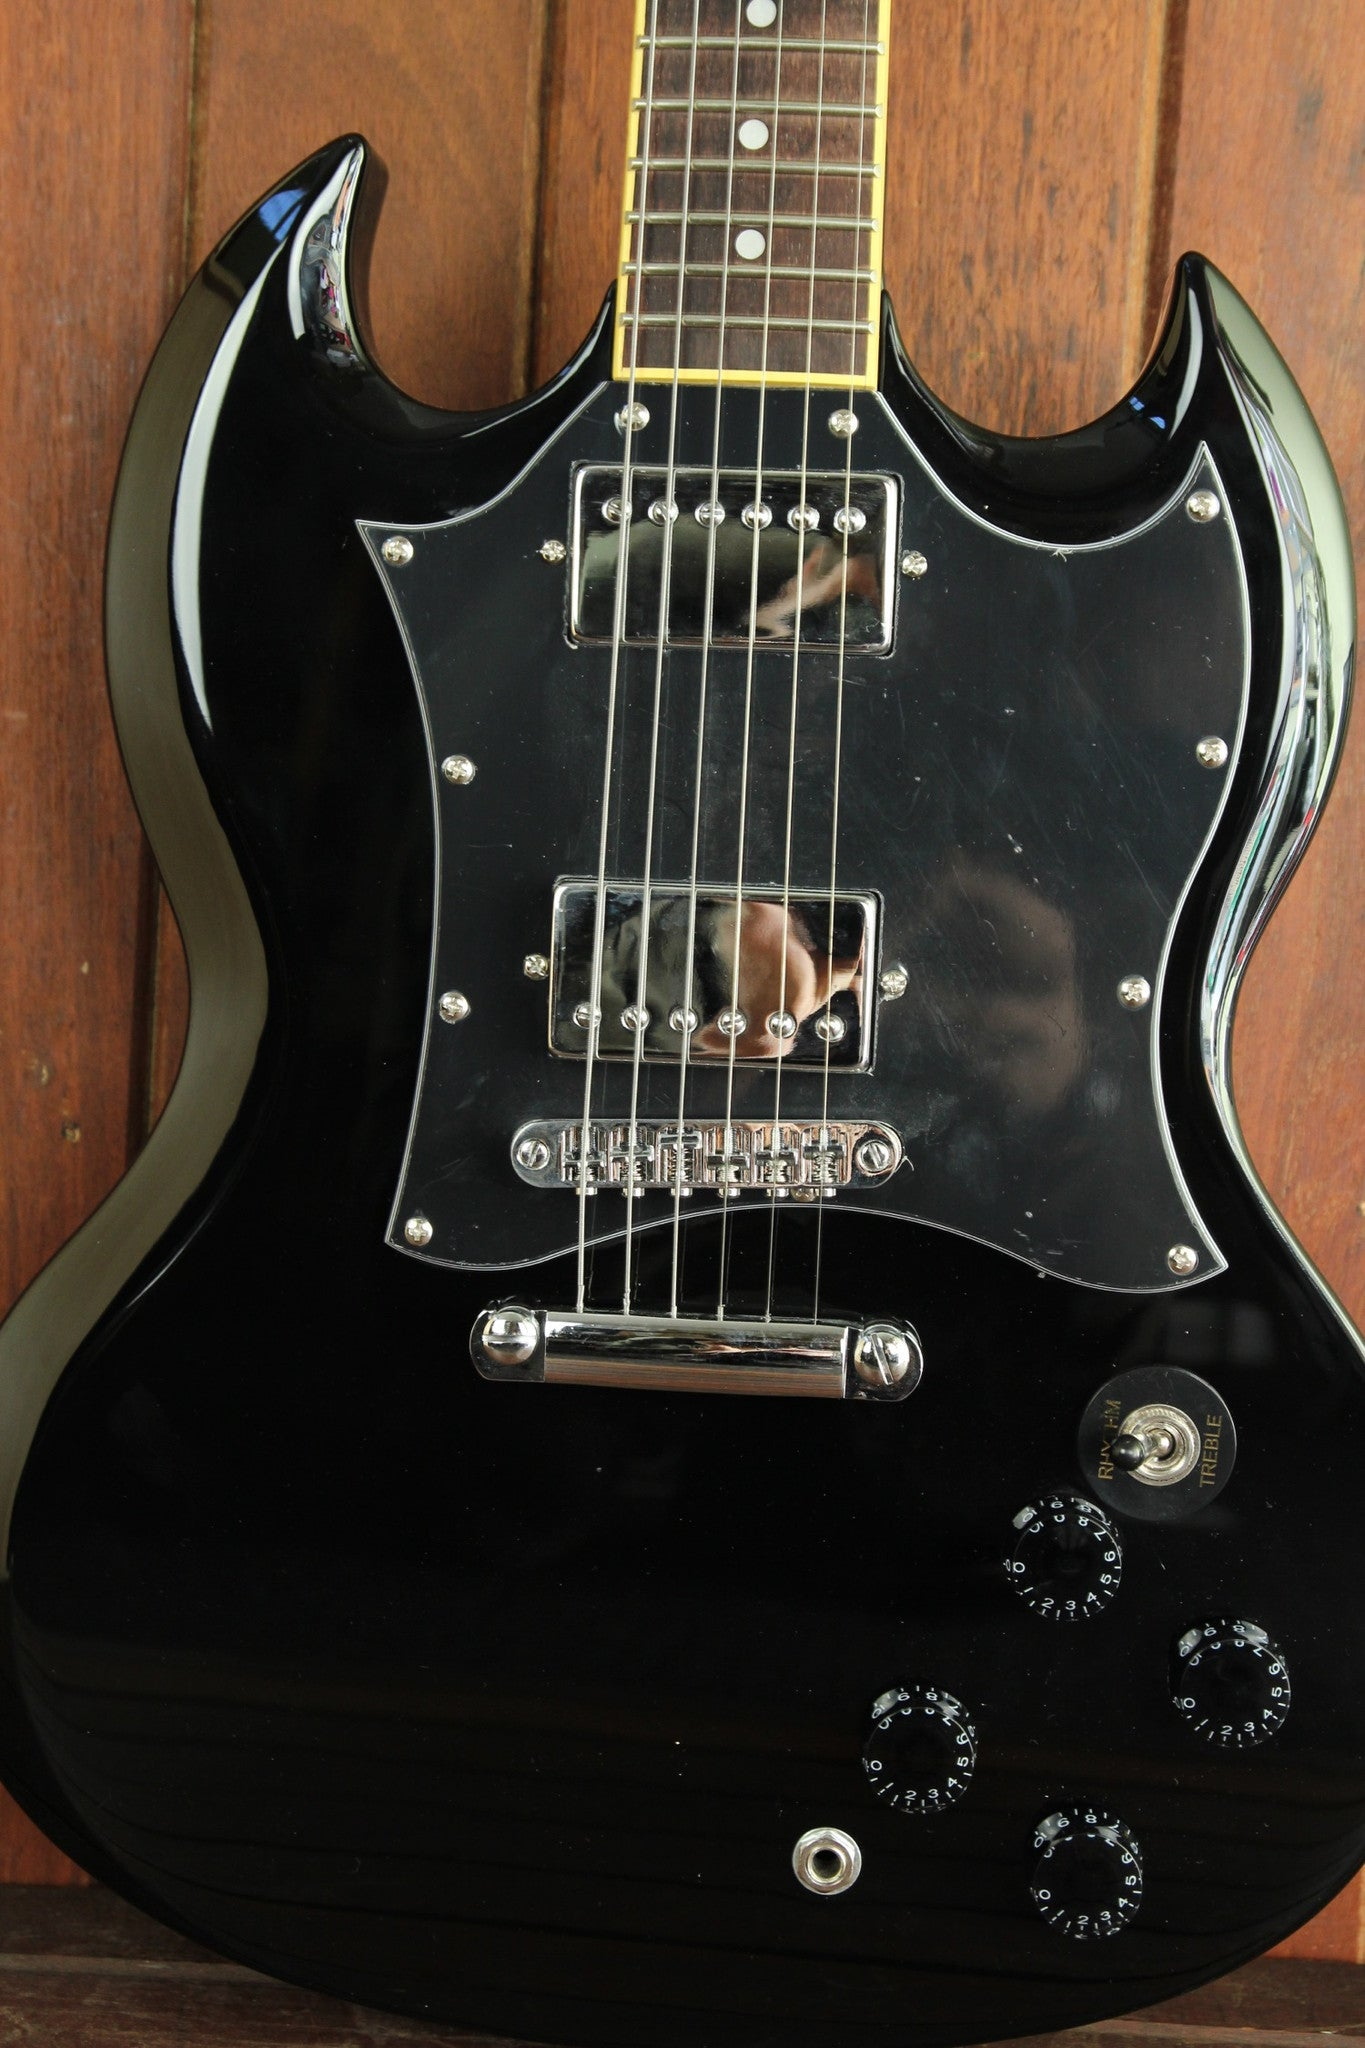 sx vintage sg style electric guitar black the rock inn. Black Bedroom Furniture Sets. Home Design Ideas